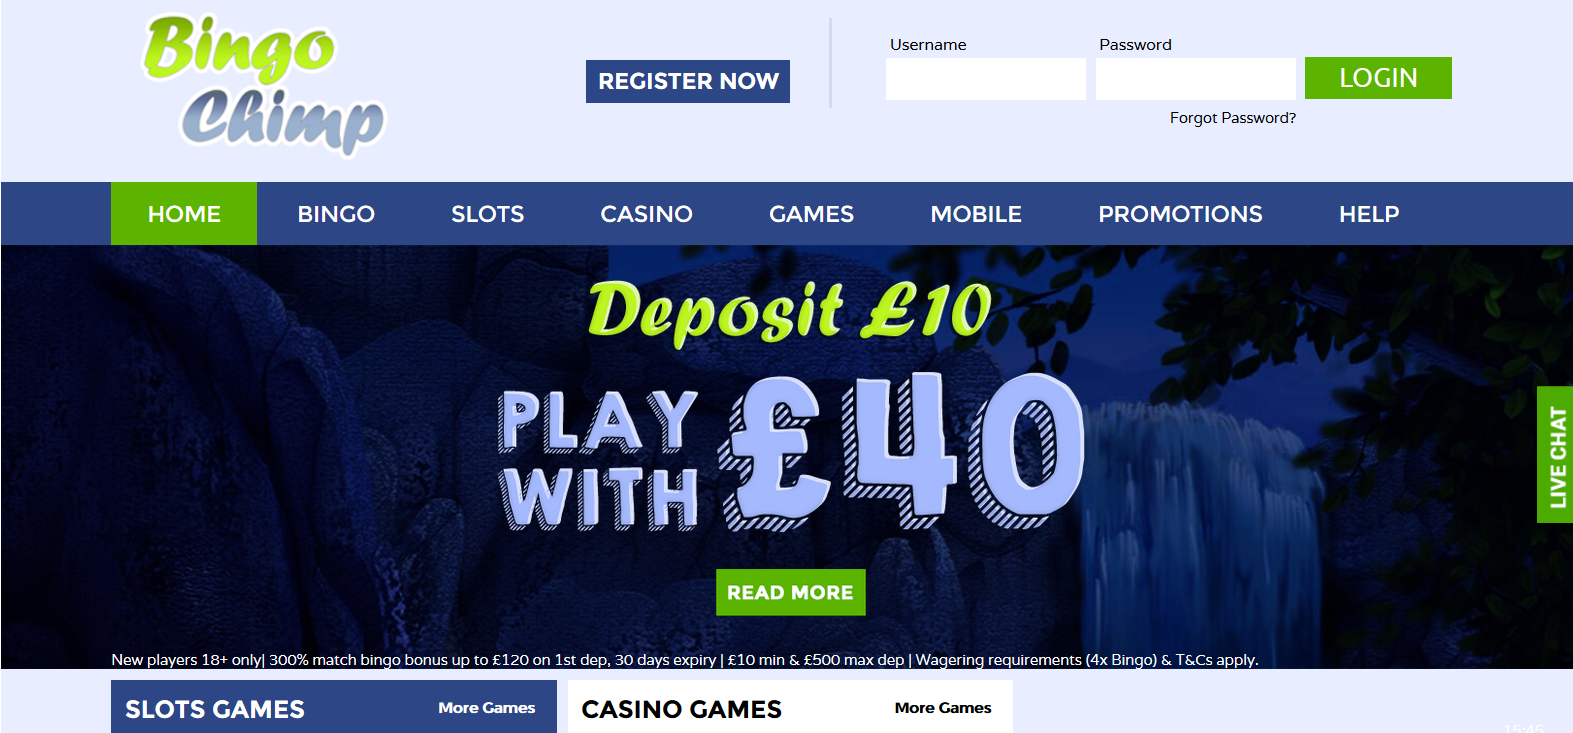 UK Bingo and Casino Games - Bingo Chimp